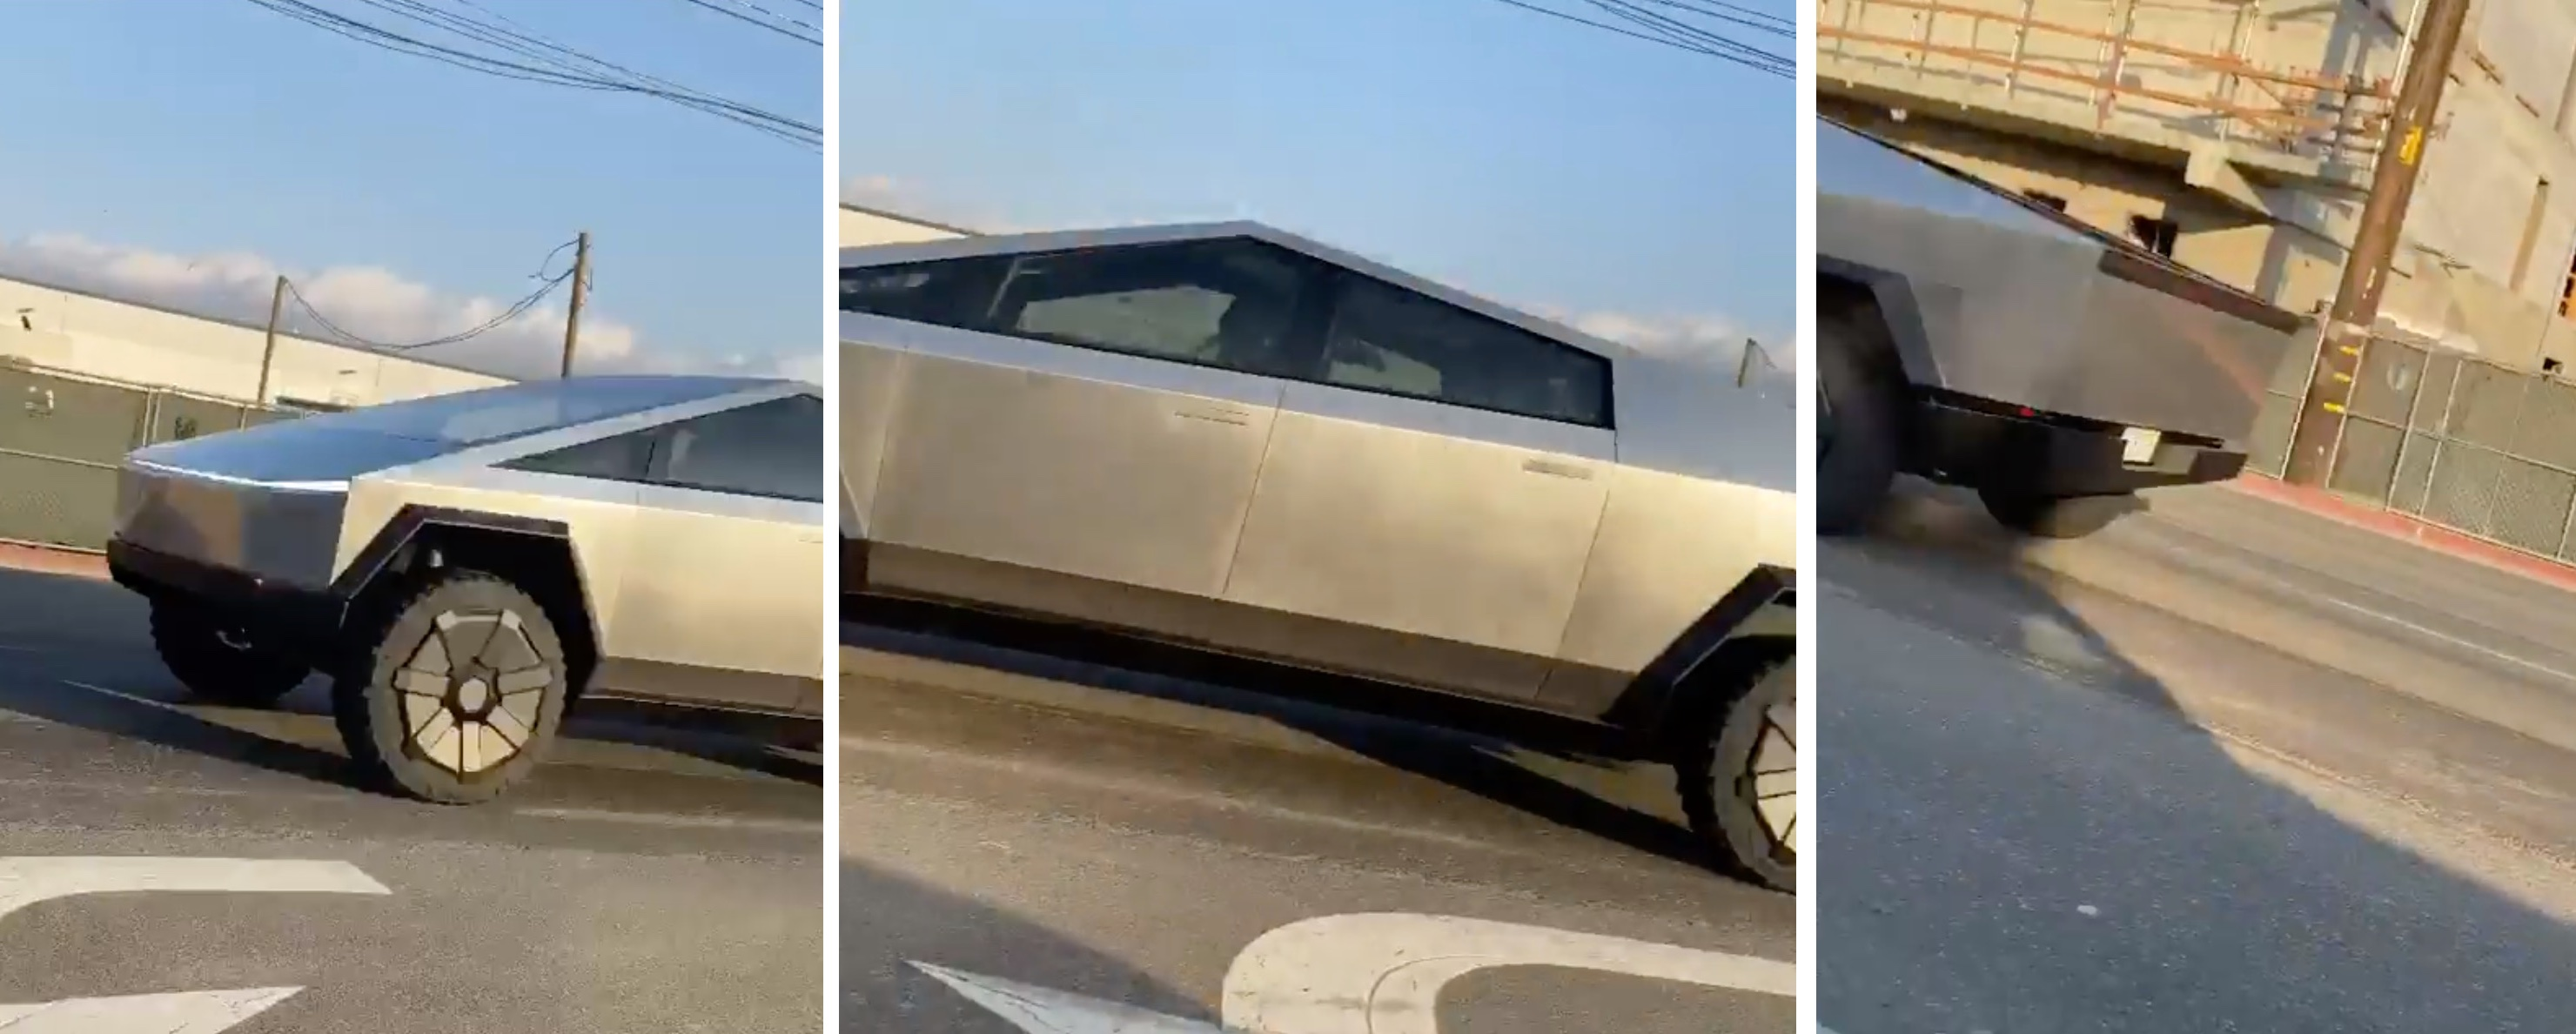 Tesla Cybertruck prototype spotted in broad daylight for first time - Electrek